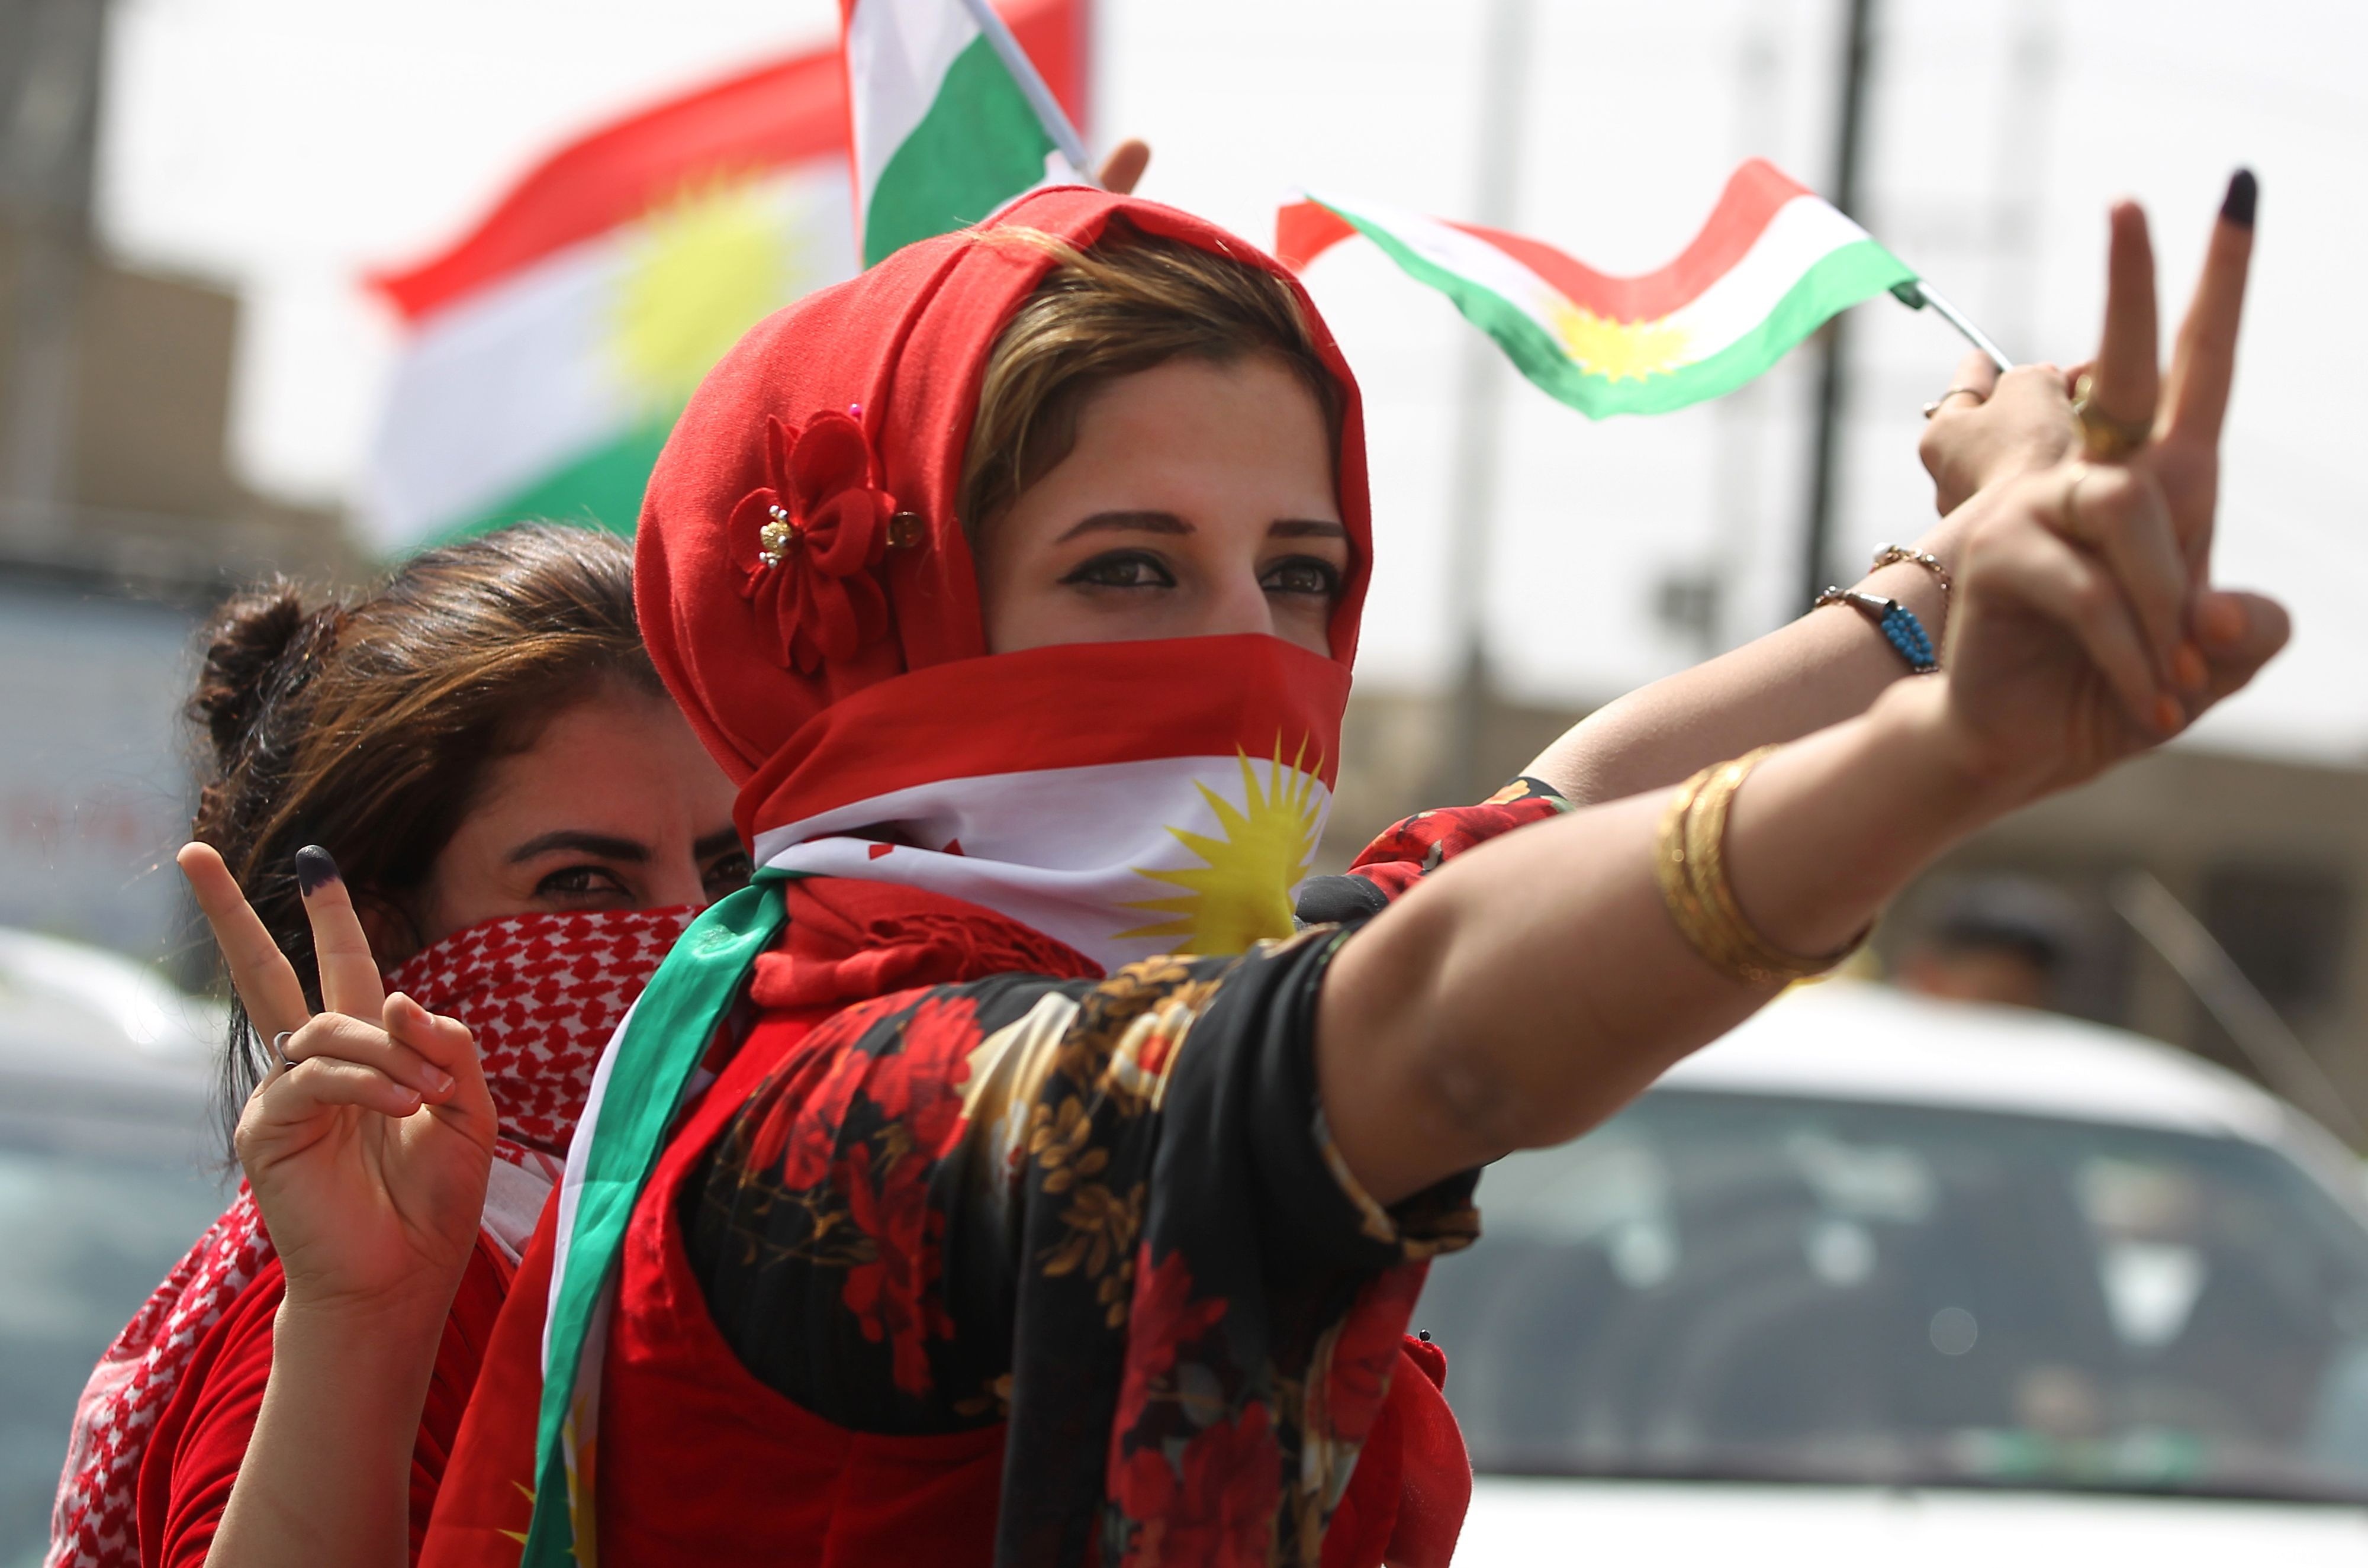 An Iraqi Kurdish woman wearing the Kurdish flag on her face flashes the victory gesture amid celebrations in the city of Kirkuk in northern Iraq, on September 25, 2017 as Iraqi Kurds vote in a referendum on independence.The non-binding vote, initiated by veteran Kurdish leader Massud Barzani, has angered not only Baghdad, following which Iraq's federal parliament demanded that troops be sent to disputed areas in the north controlled by the Kurds since 2003, but also neighbours Turkey and Iran who are concerned it could stoke separatist aspirations among their own sizeable Kurdish minorities. / AFP PHOTO / AHMAD AL-RUBAYEAHMAD AL-RUBAYE/AFP/Getty Images